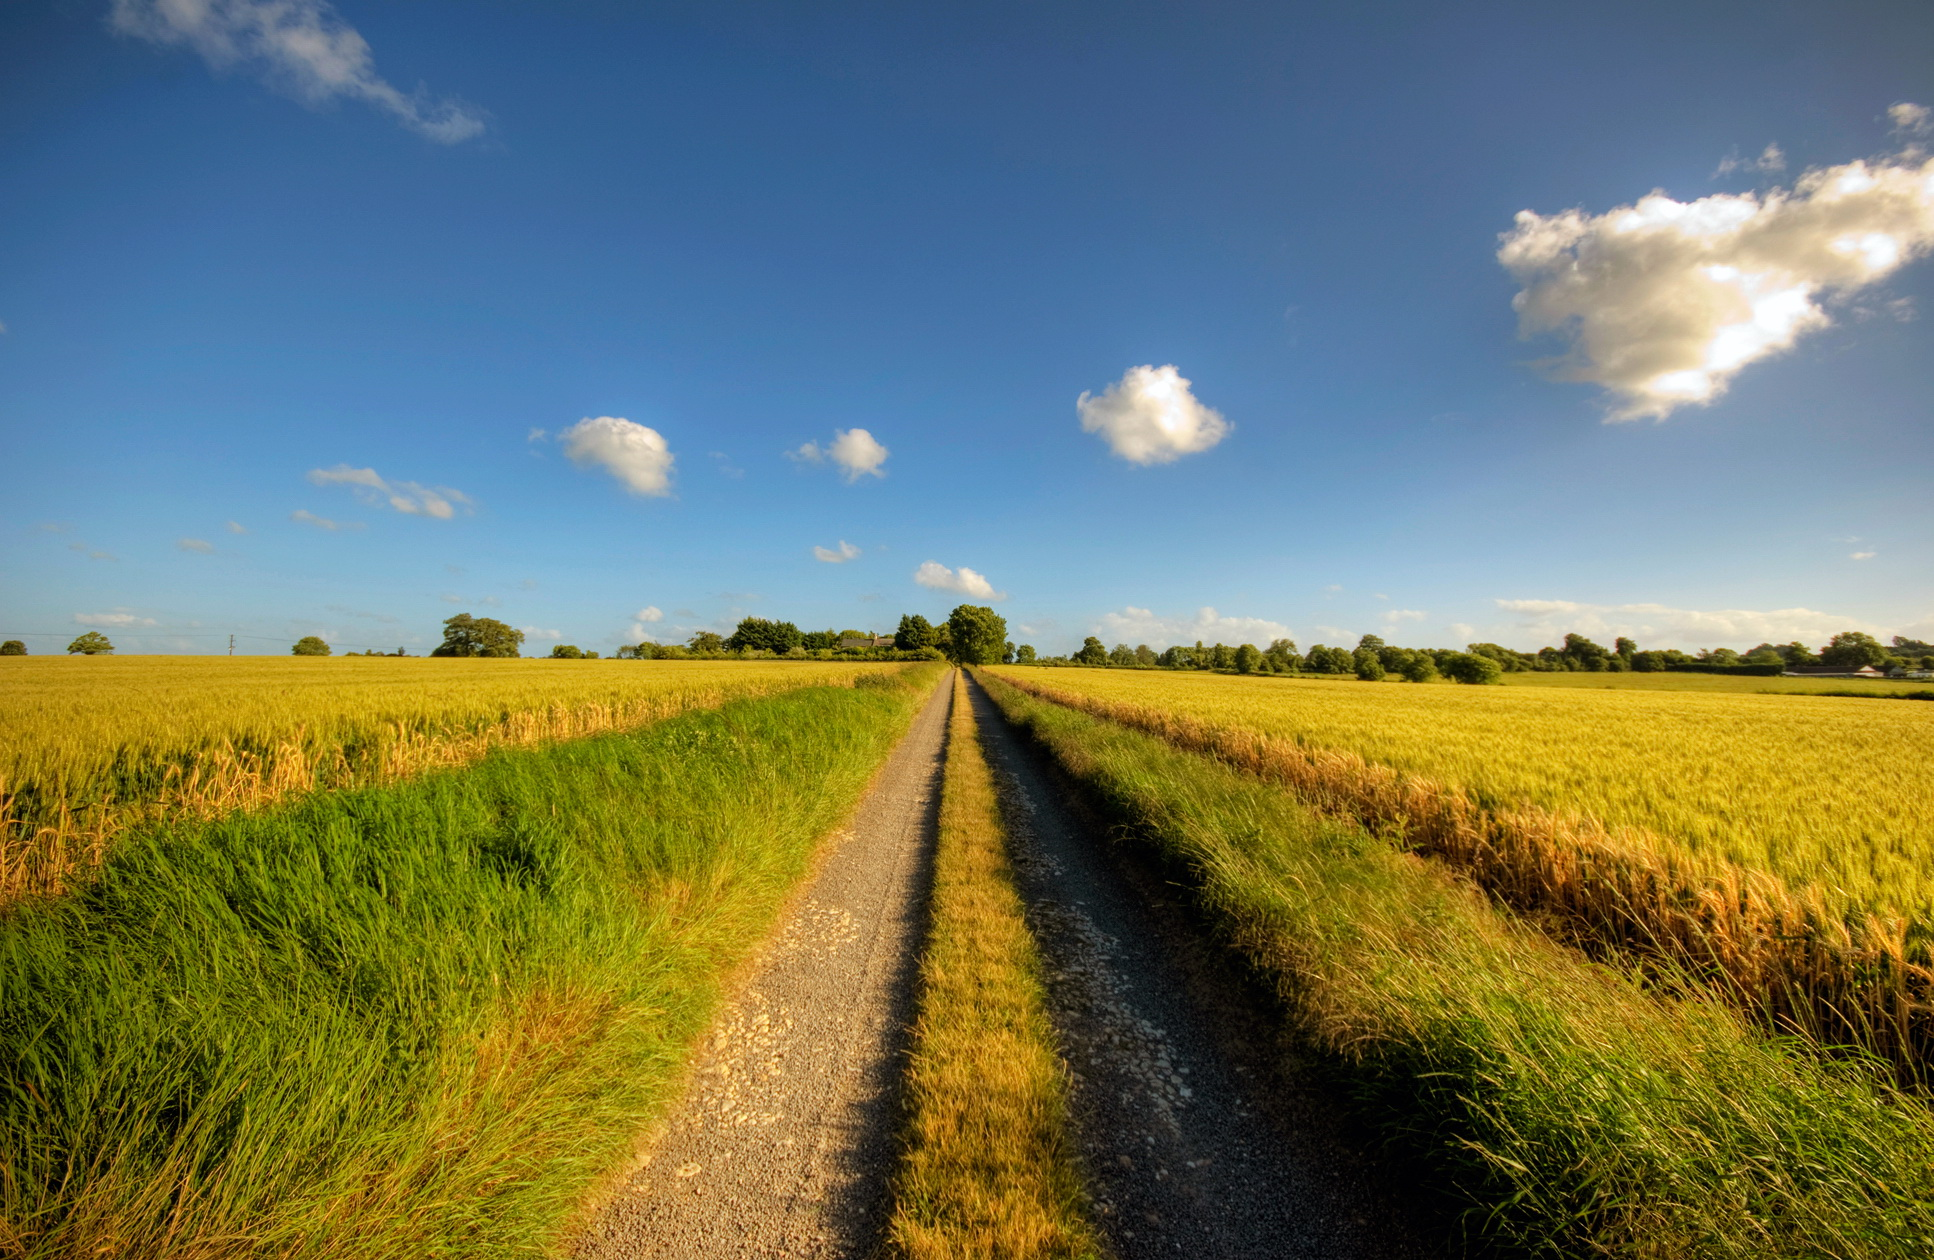 Wallpapersafari: Country Road Wallpapers Desktop